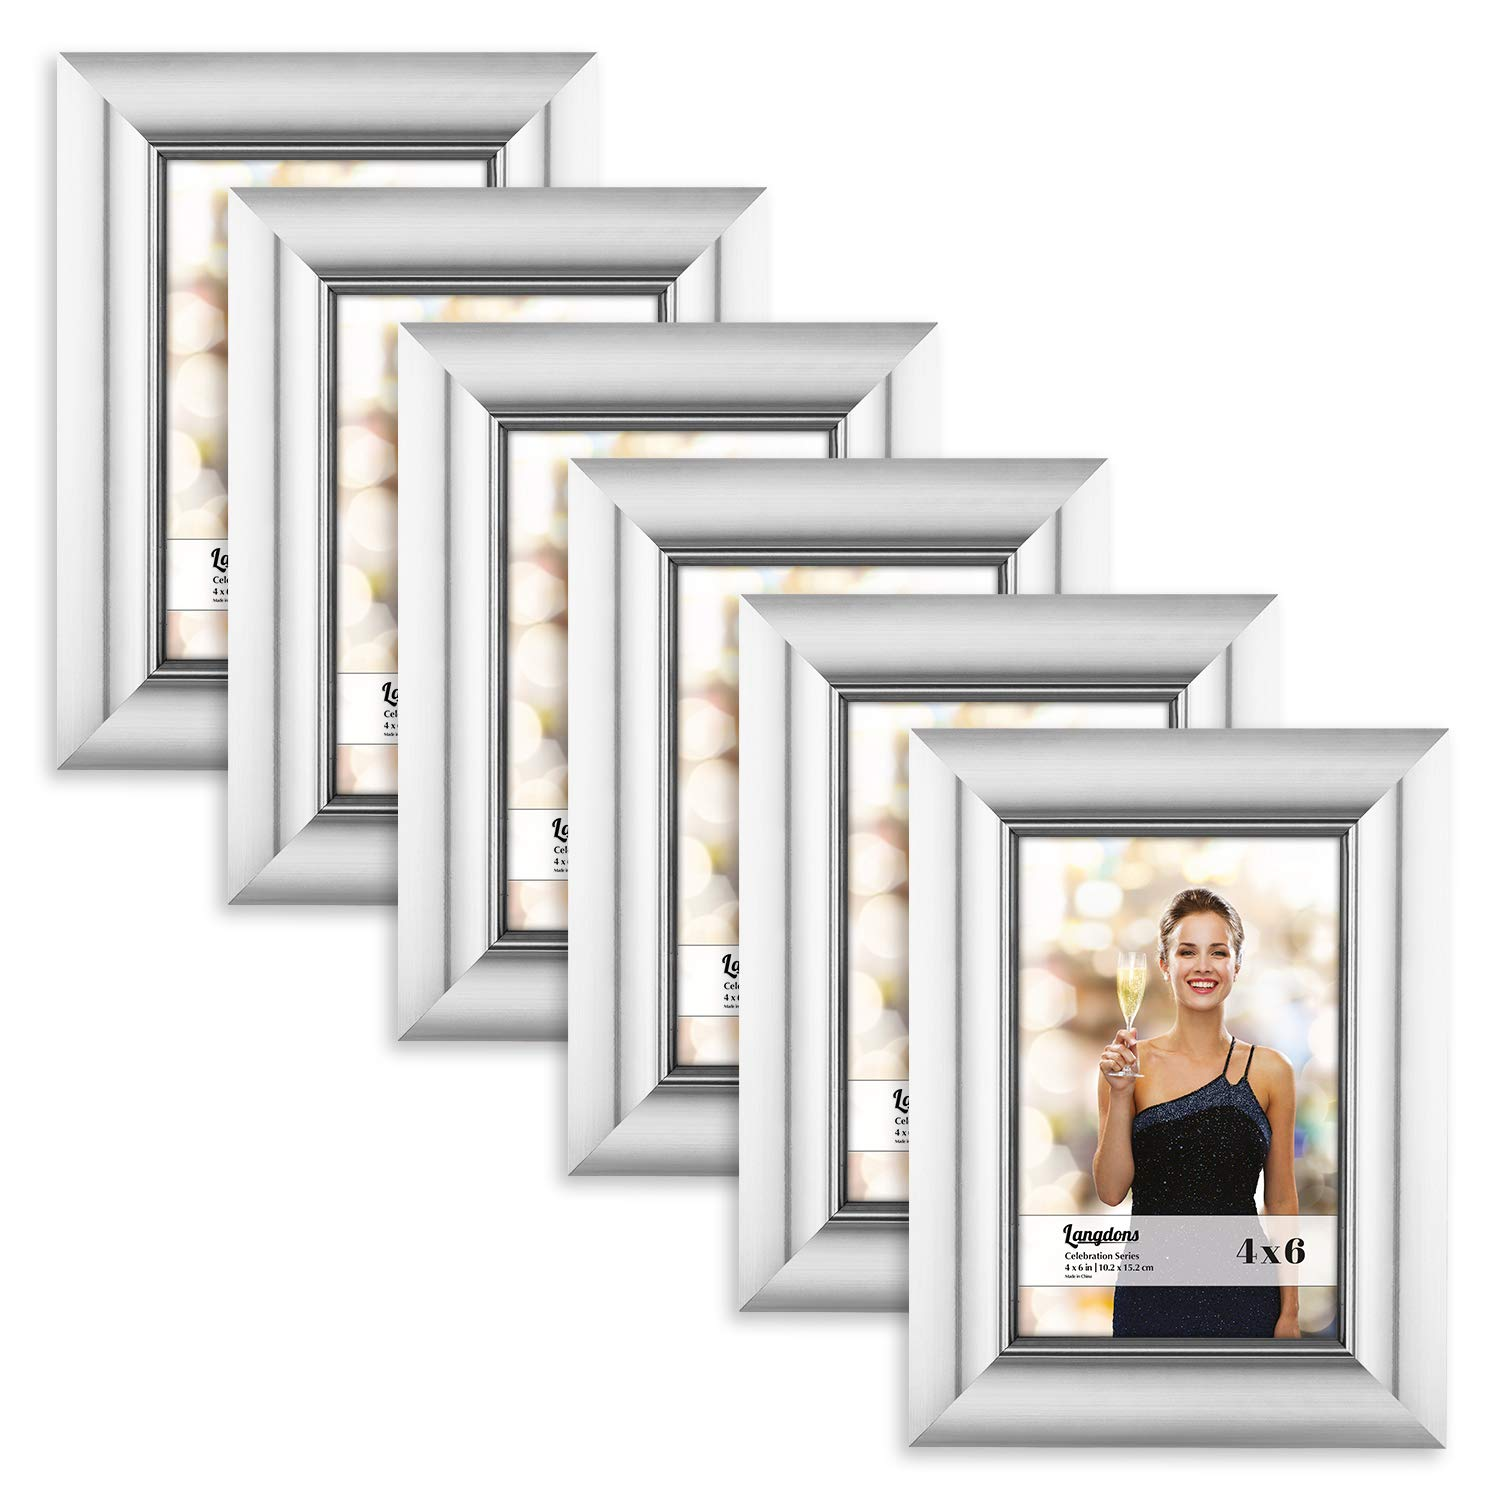 Langdons 4x6 Picture Frame Set (3 Pack, Champagne Picture Frame) Photo Frames 4x6, Wall Hang or Table Top Display, 4 x 6 Picture frame - Champagne Gold Picture Frame, Celebration Series